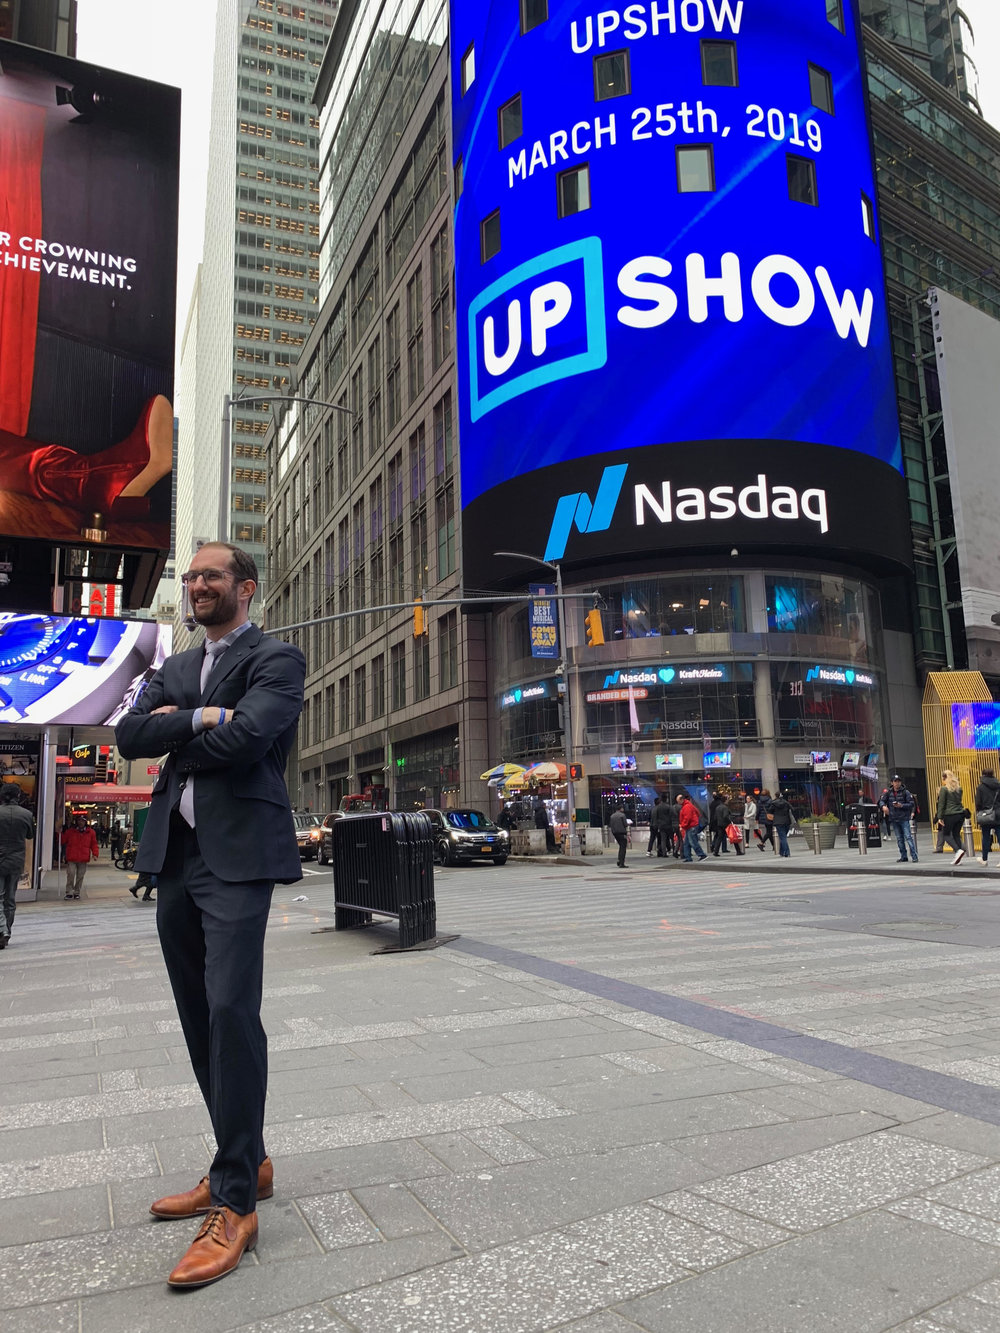 The UPshow logo displayed proudly in Time Square.